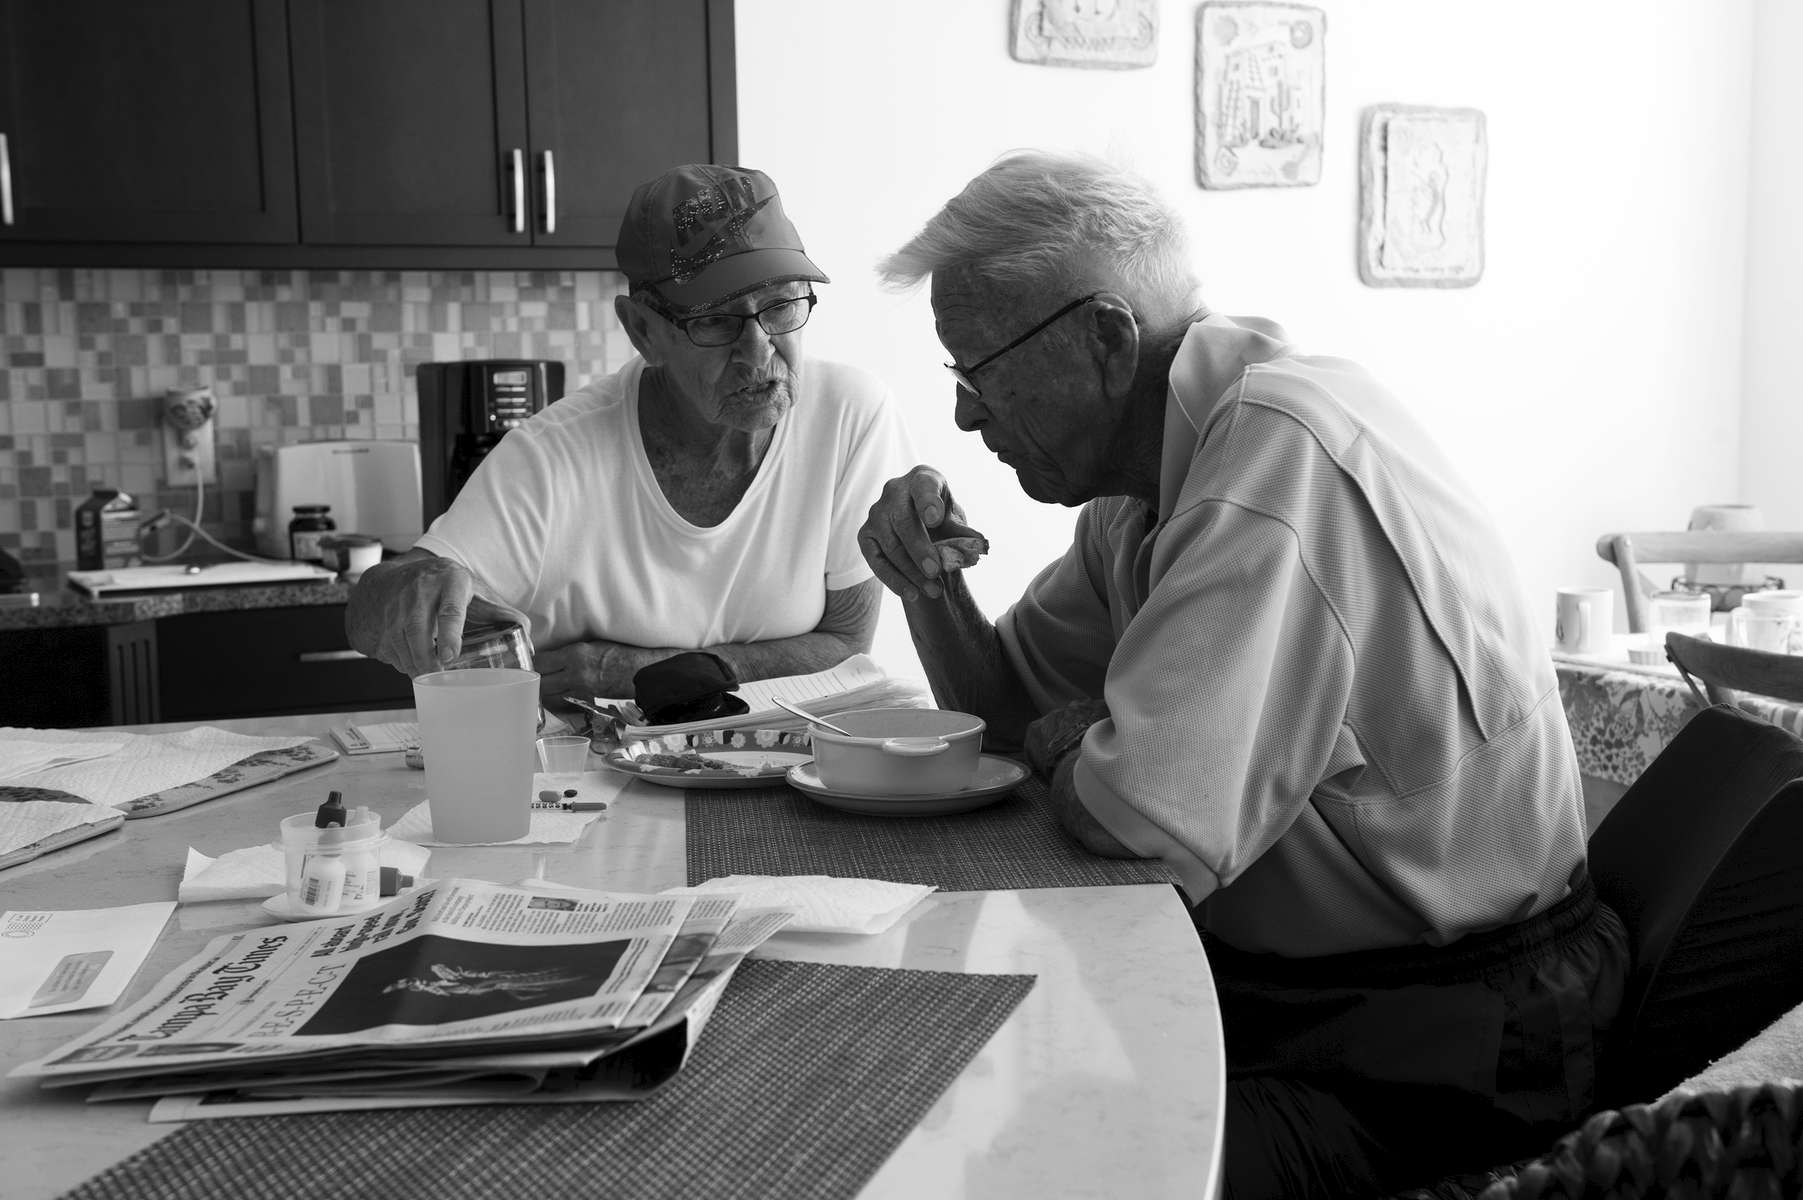 Virginia Minda reminds her husband Ki of the medications he forgot to take as he eats breakfast. Ki was a gregarious, extroverted and successful business executive for most of his life until vascular dementia affected his cognitive functioning and memory.